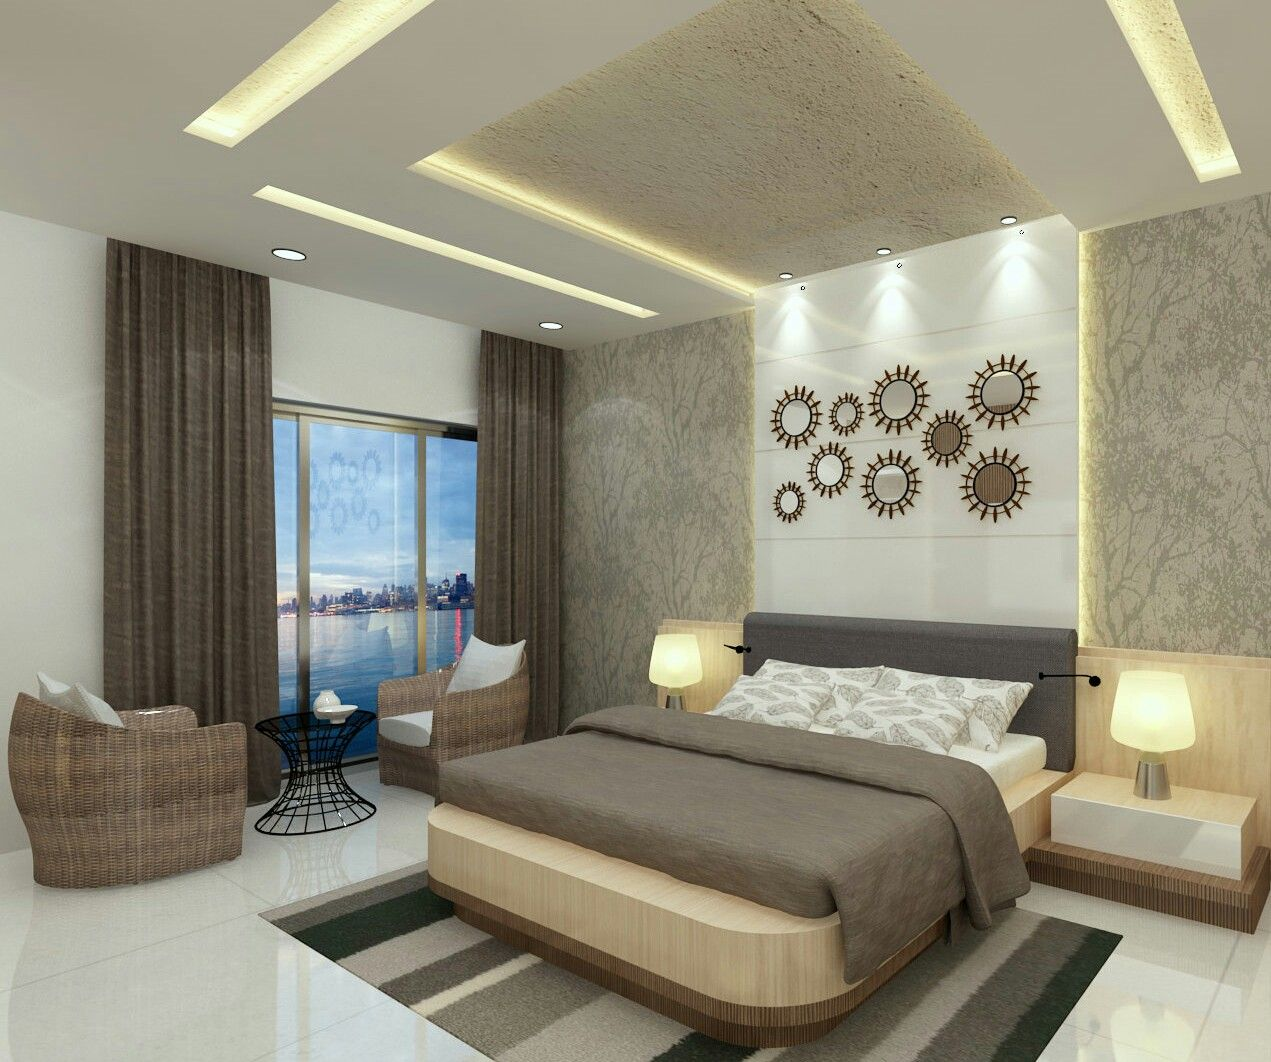 Luxury Bedroom With Elements And Fittings Interior